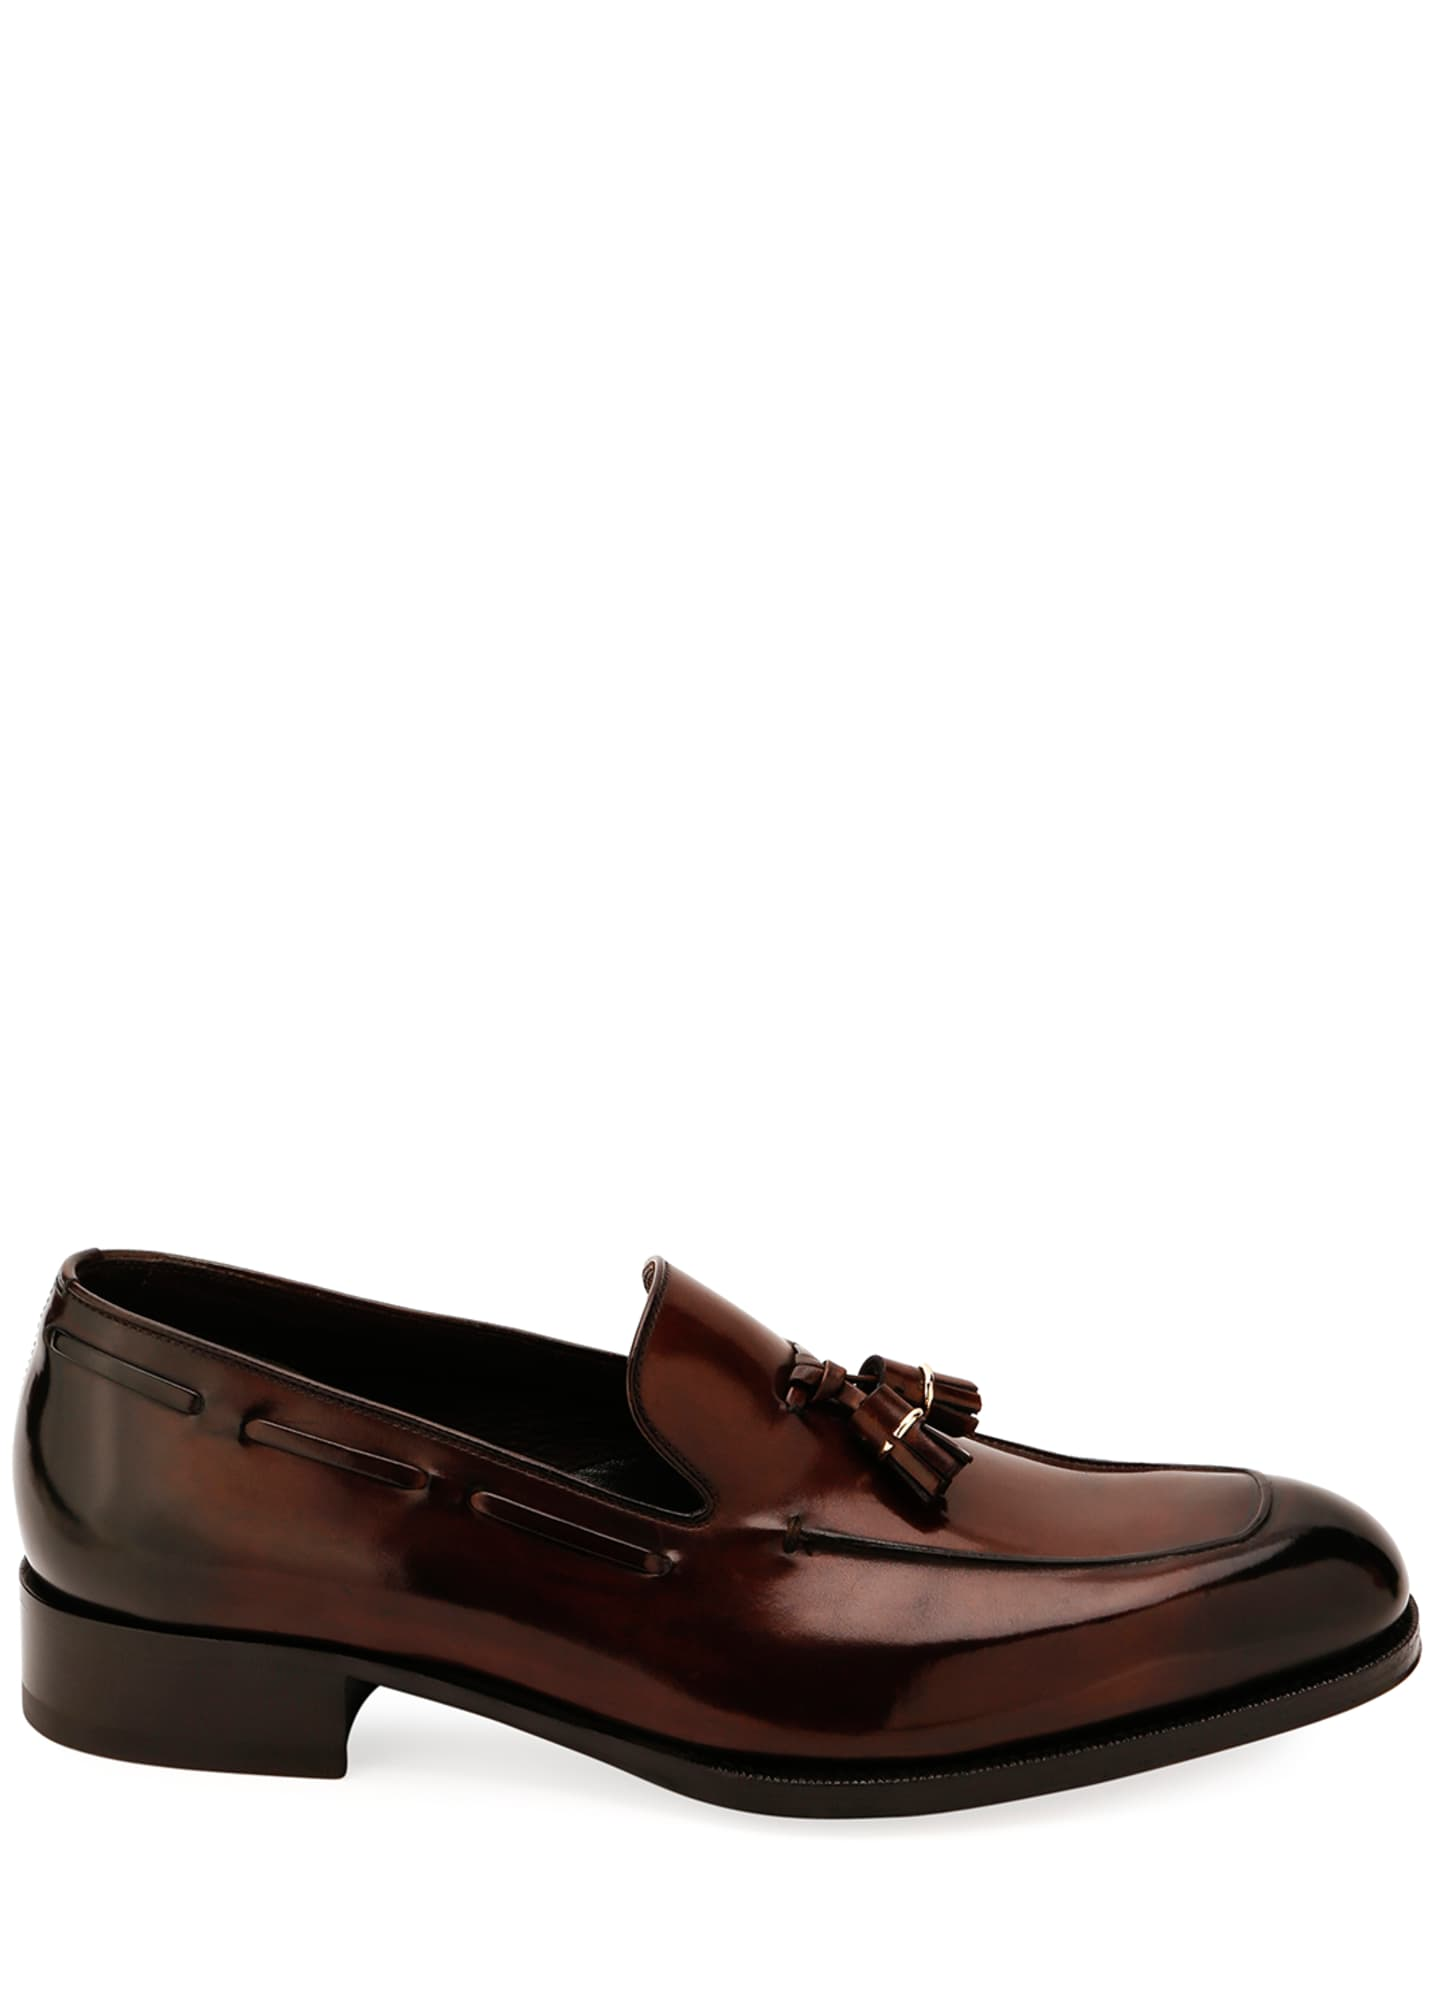 Image 2 of 3: Men's Tassel Loafers